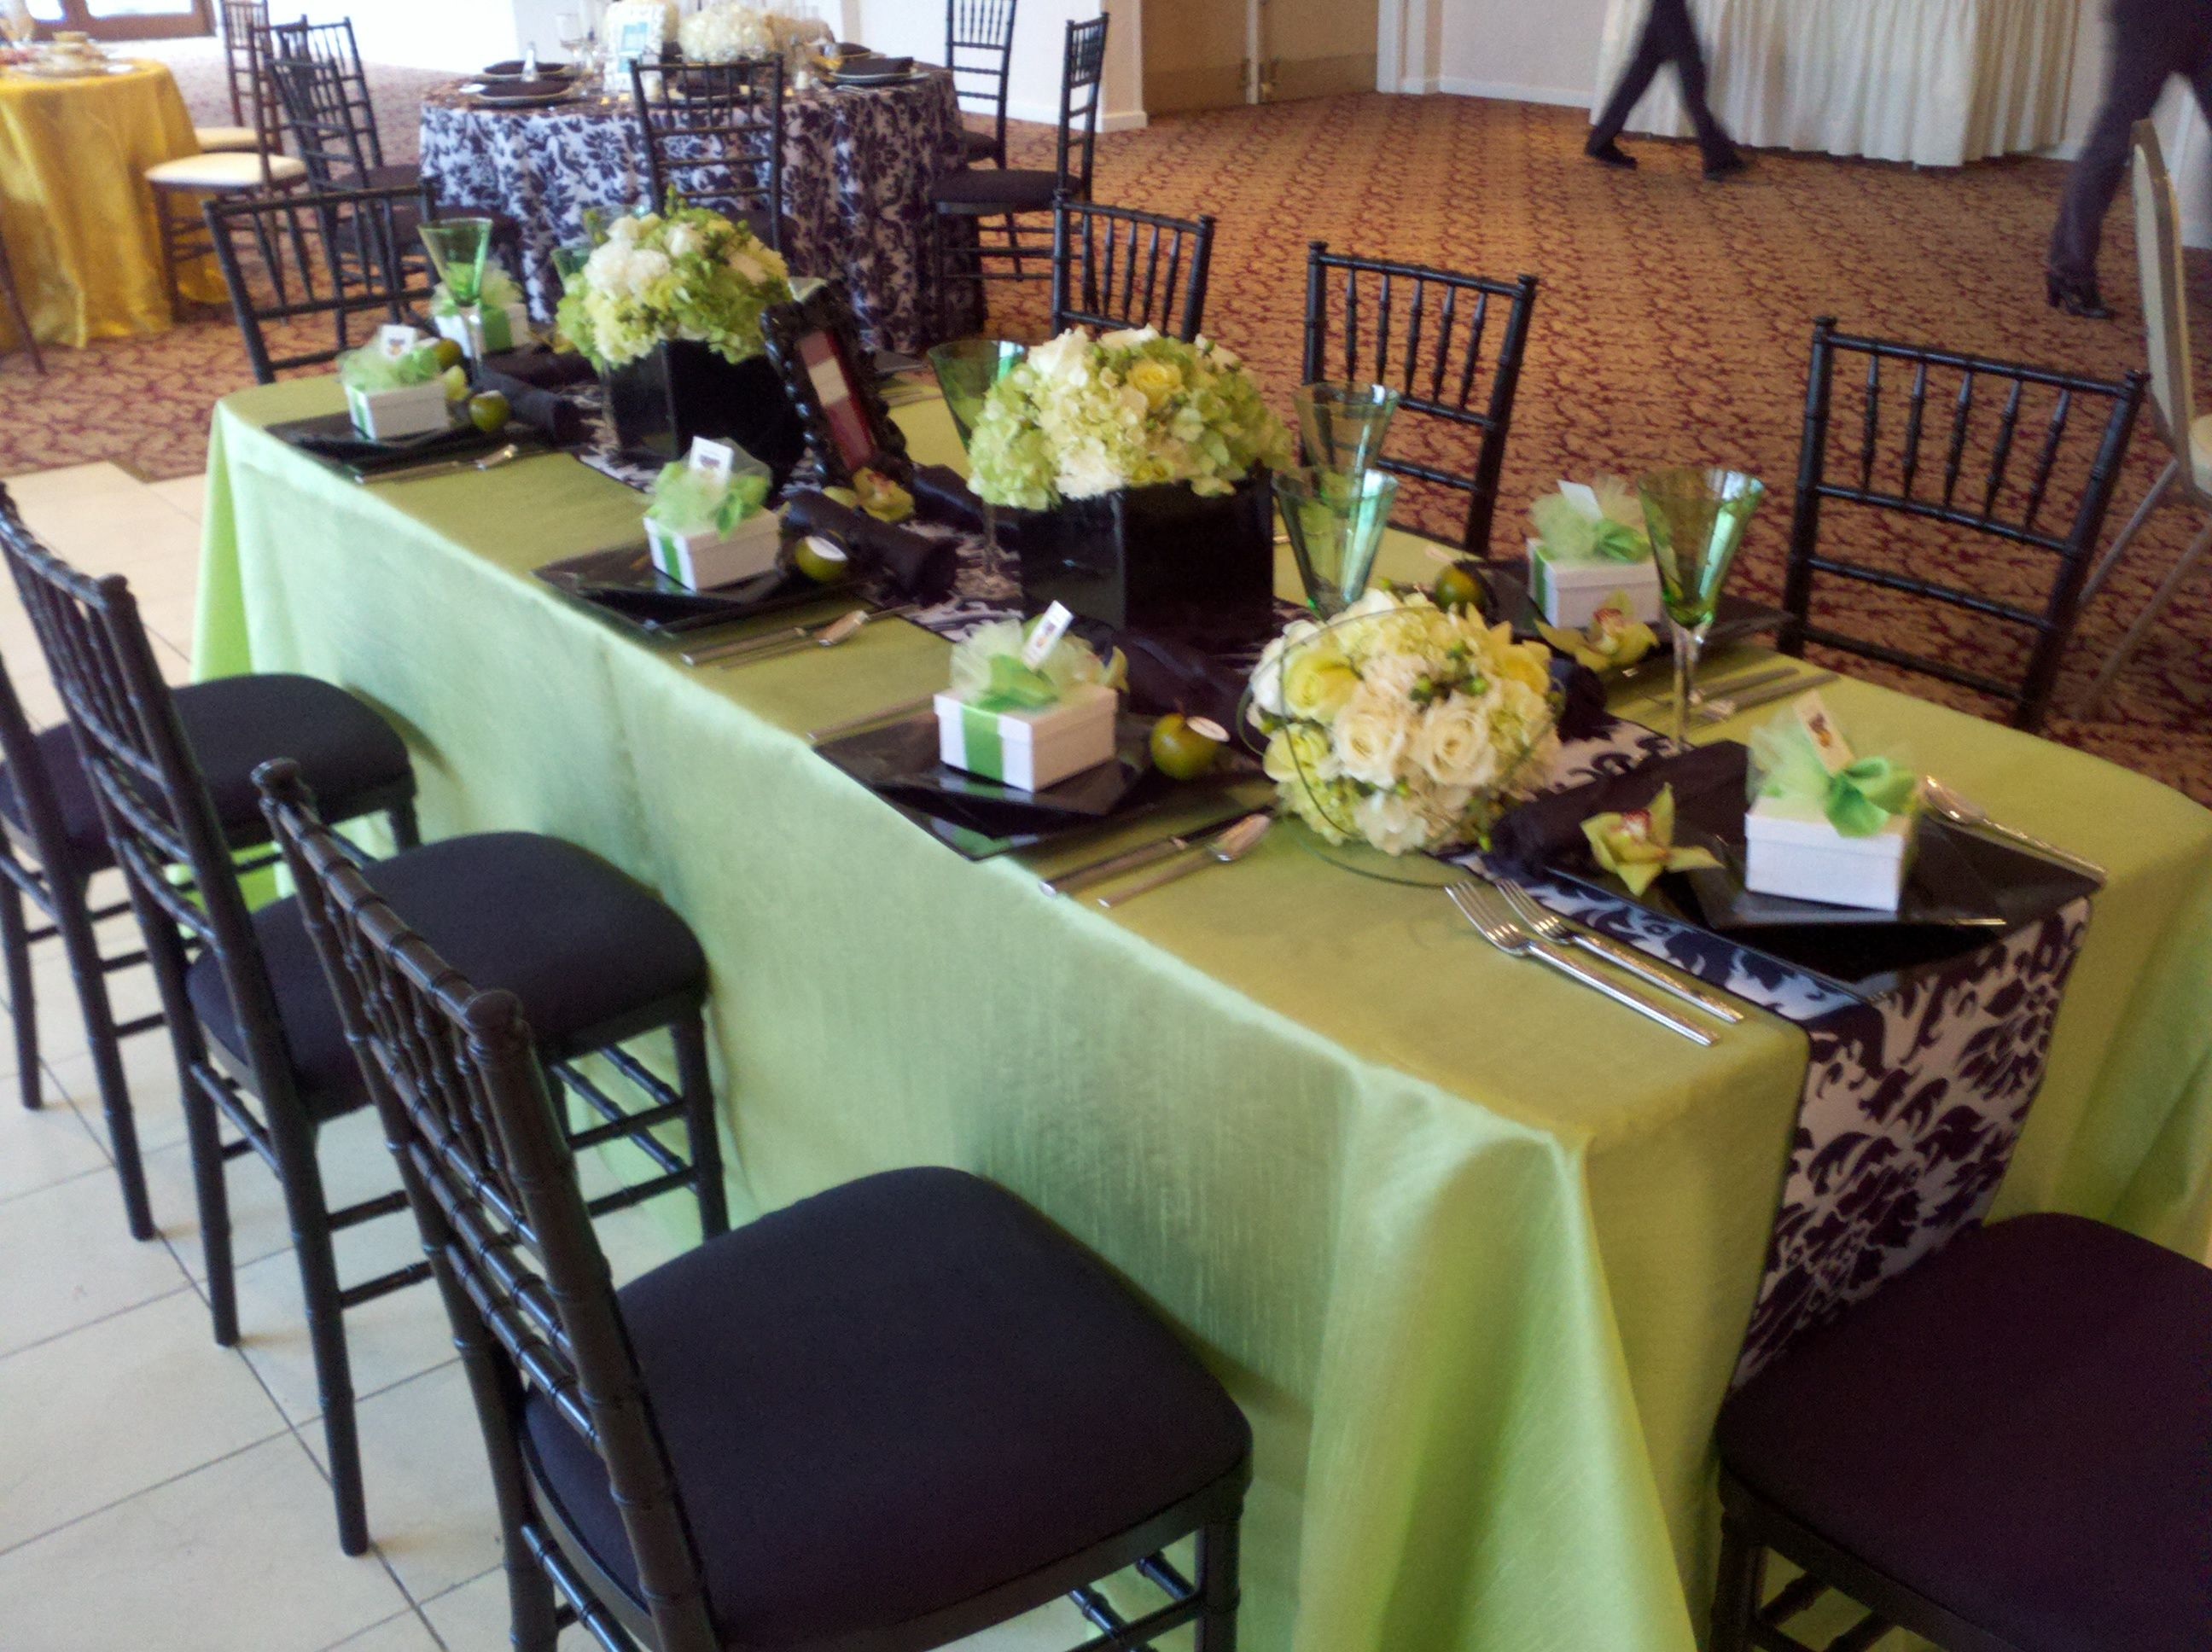 Black U0026 White Damask Table Runner With Lime Green Accents And Green  Hydrangea Centerpieces.